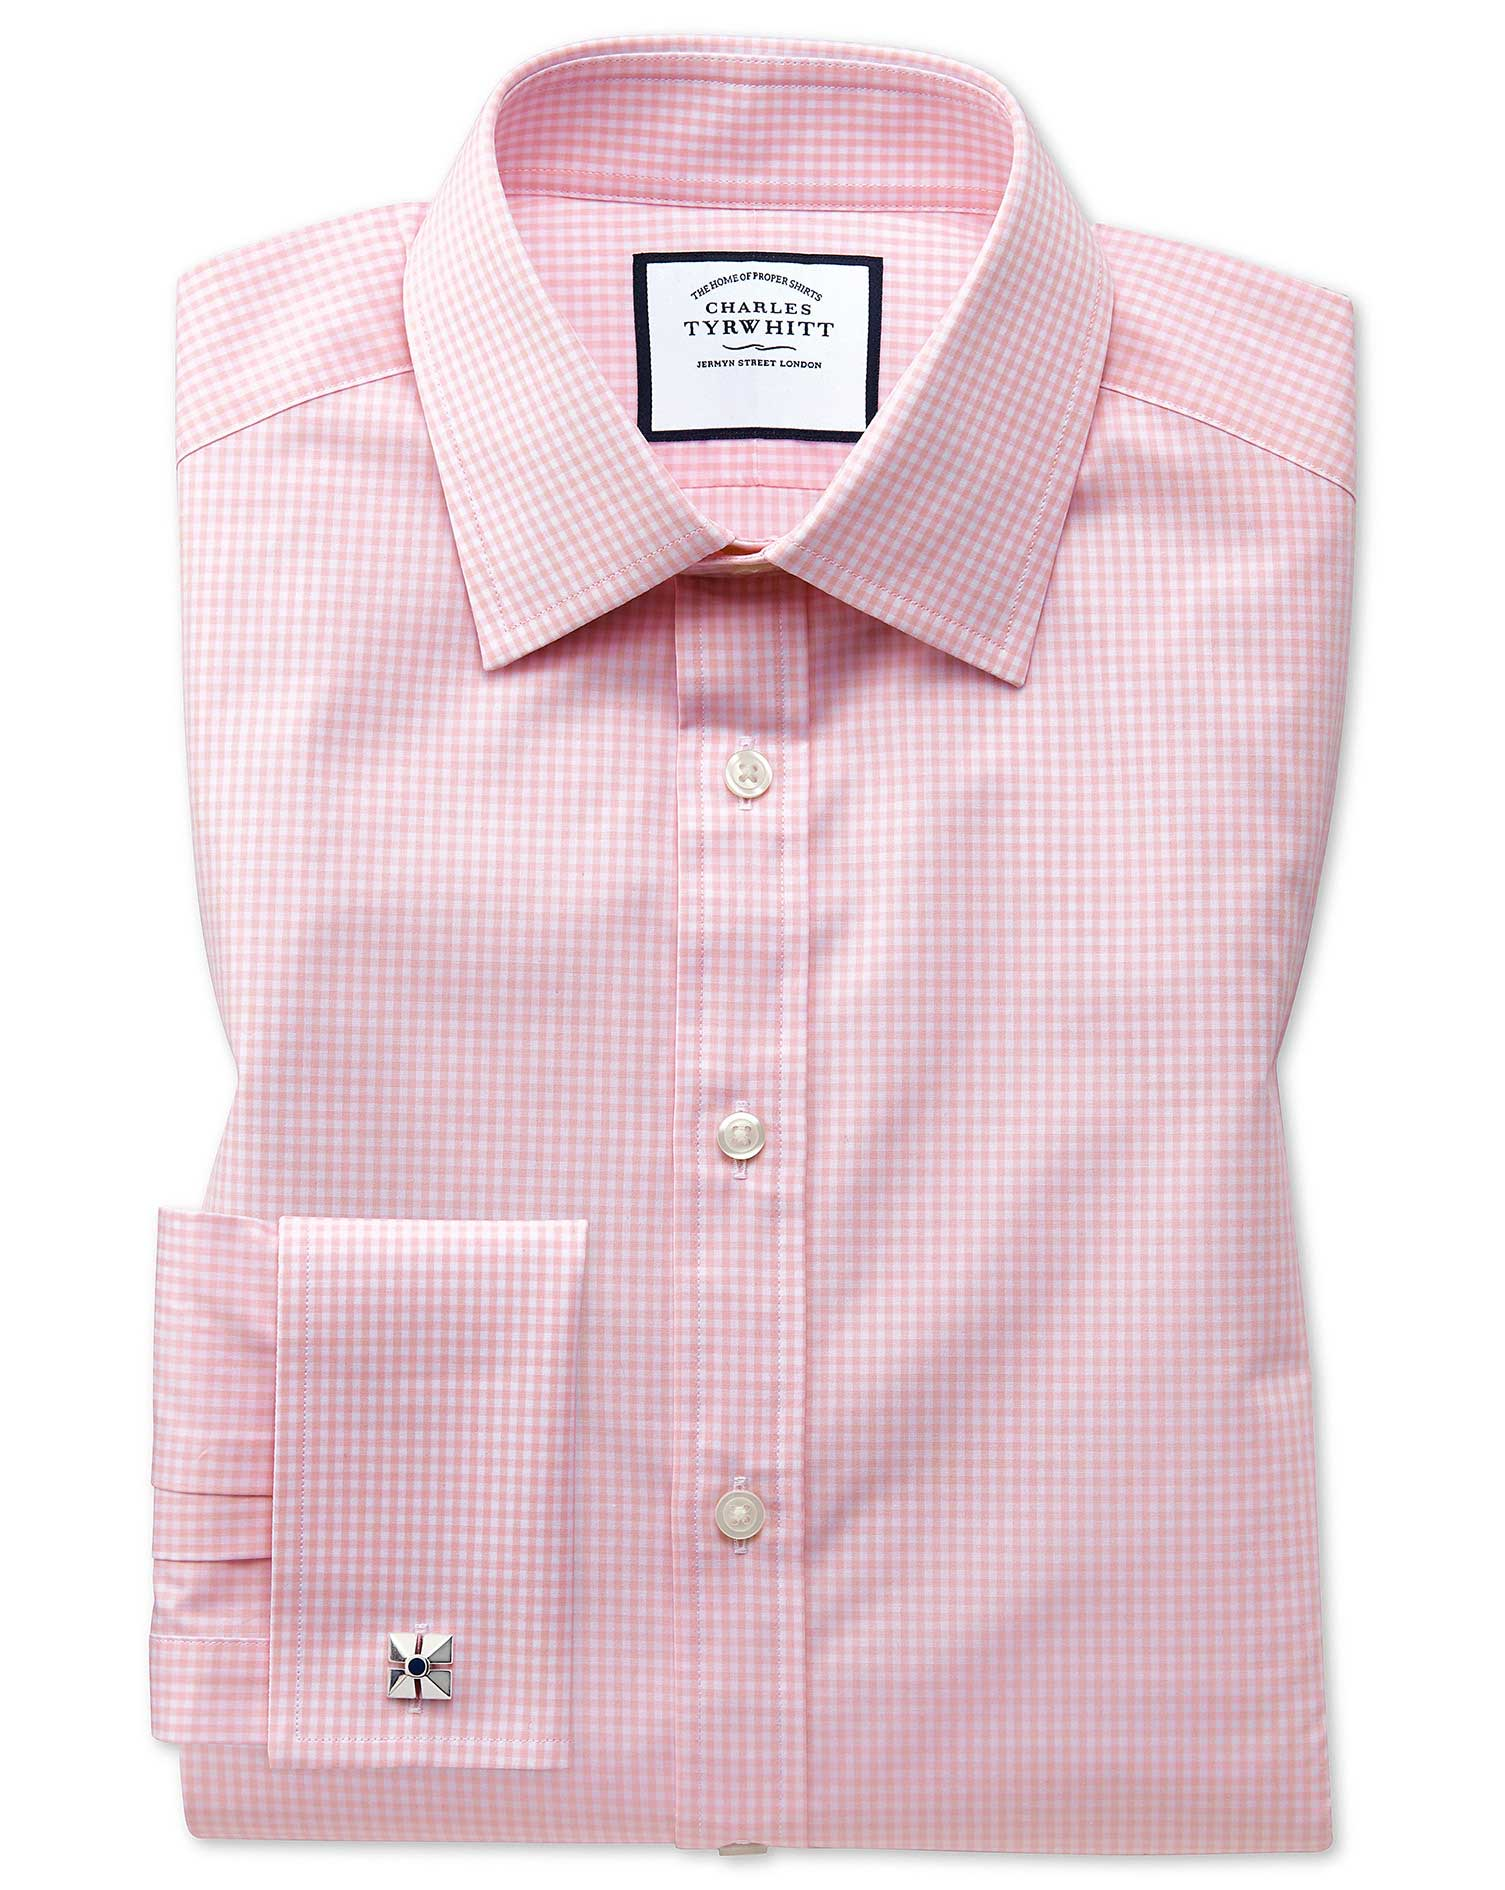 Extra Slim Fit Small Gingham Light Pink Cotton Formal Shirt Double Cuff Size 15/35 by Charles Tyrwhi